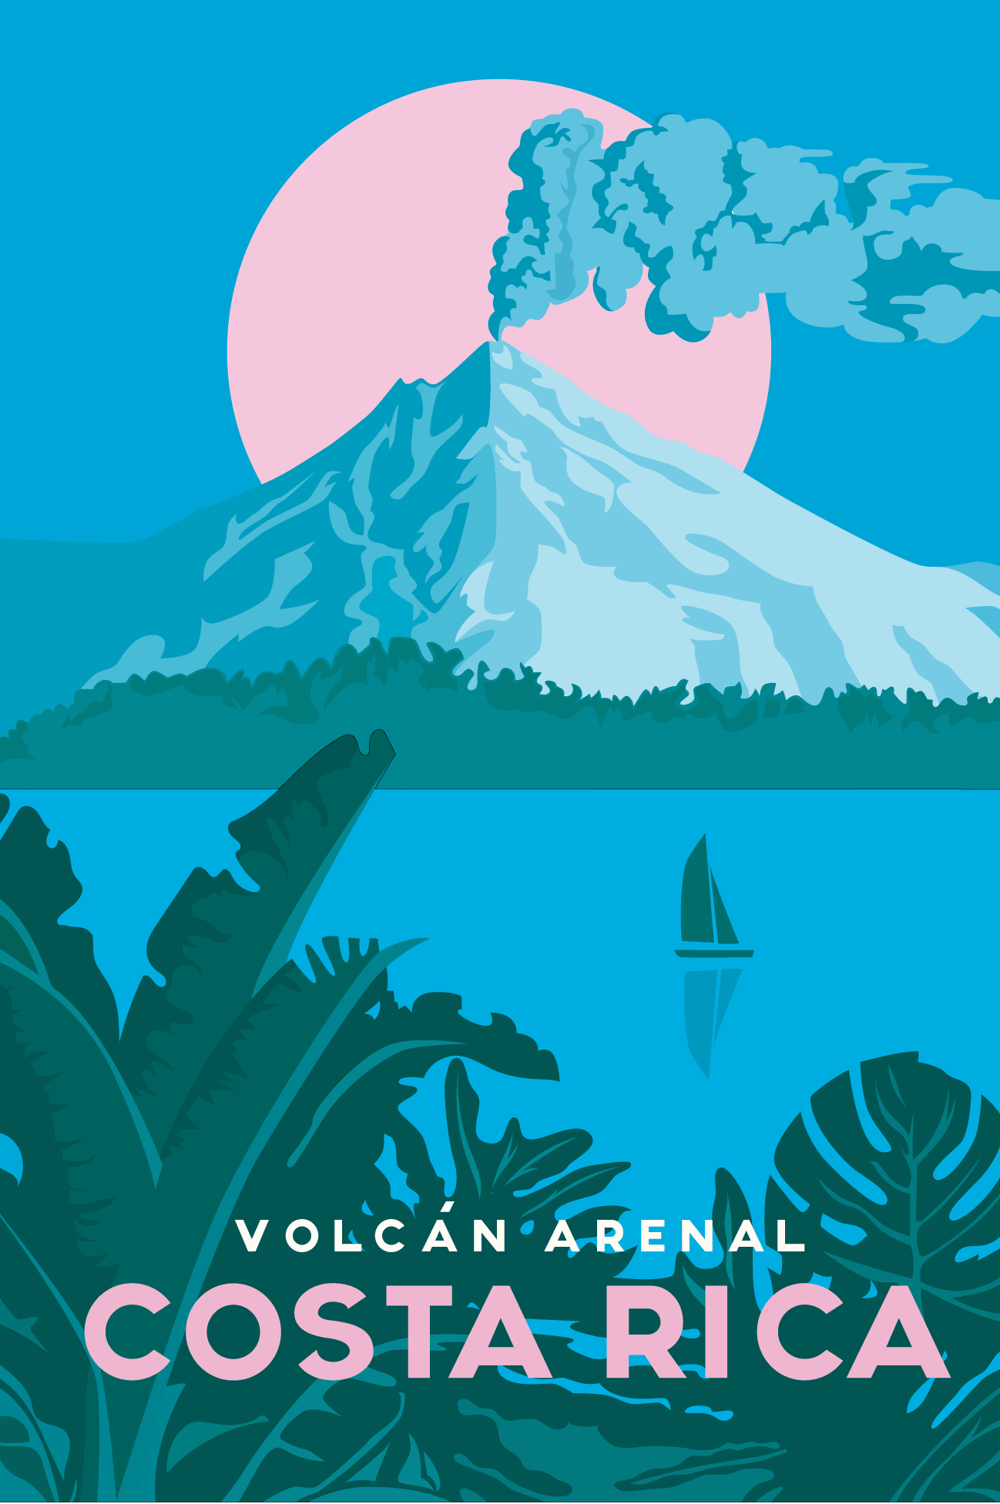 Missy Ames' Costa Rica Travel Poster - image 2 - student project